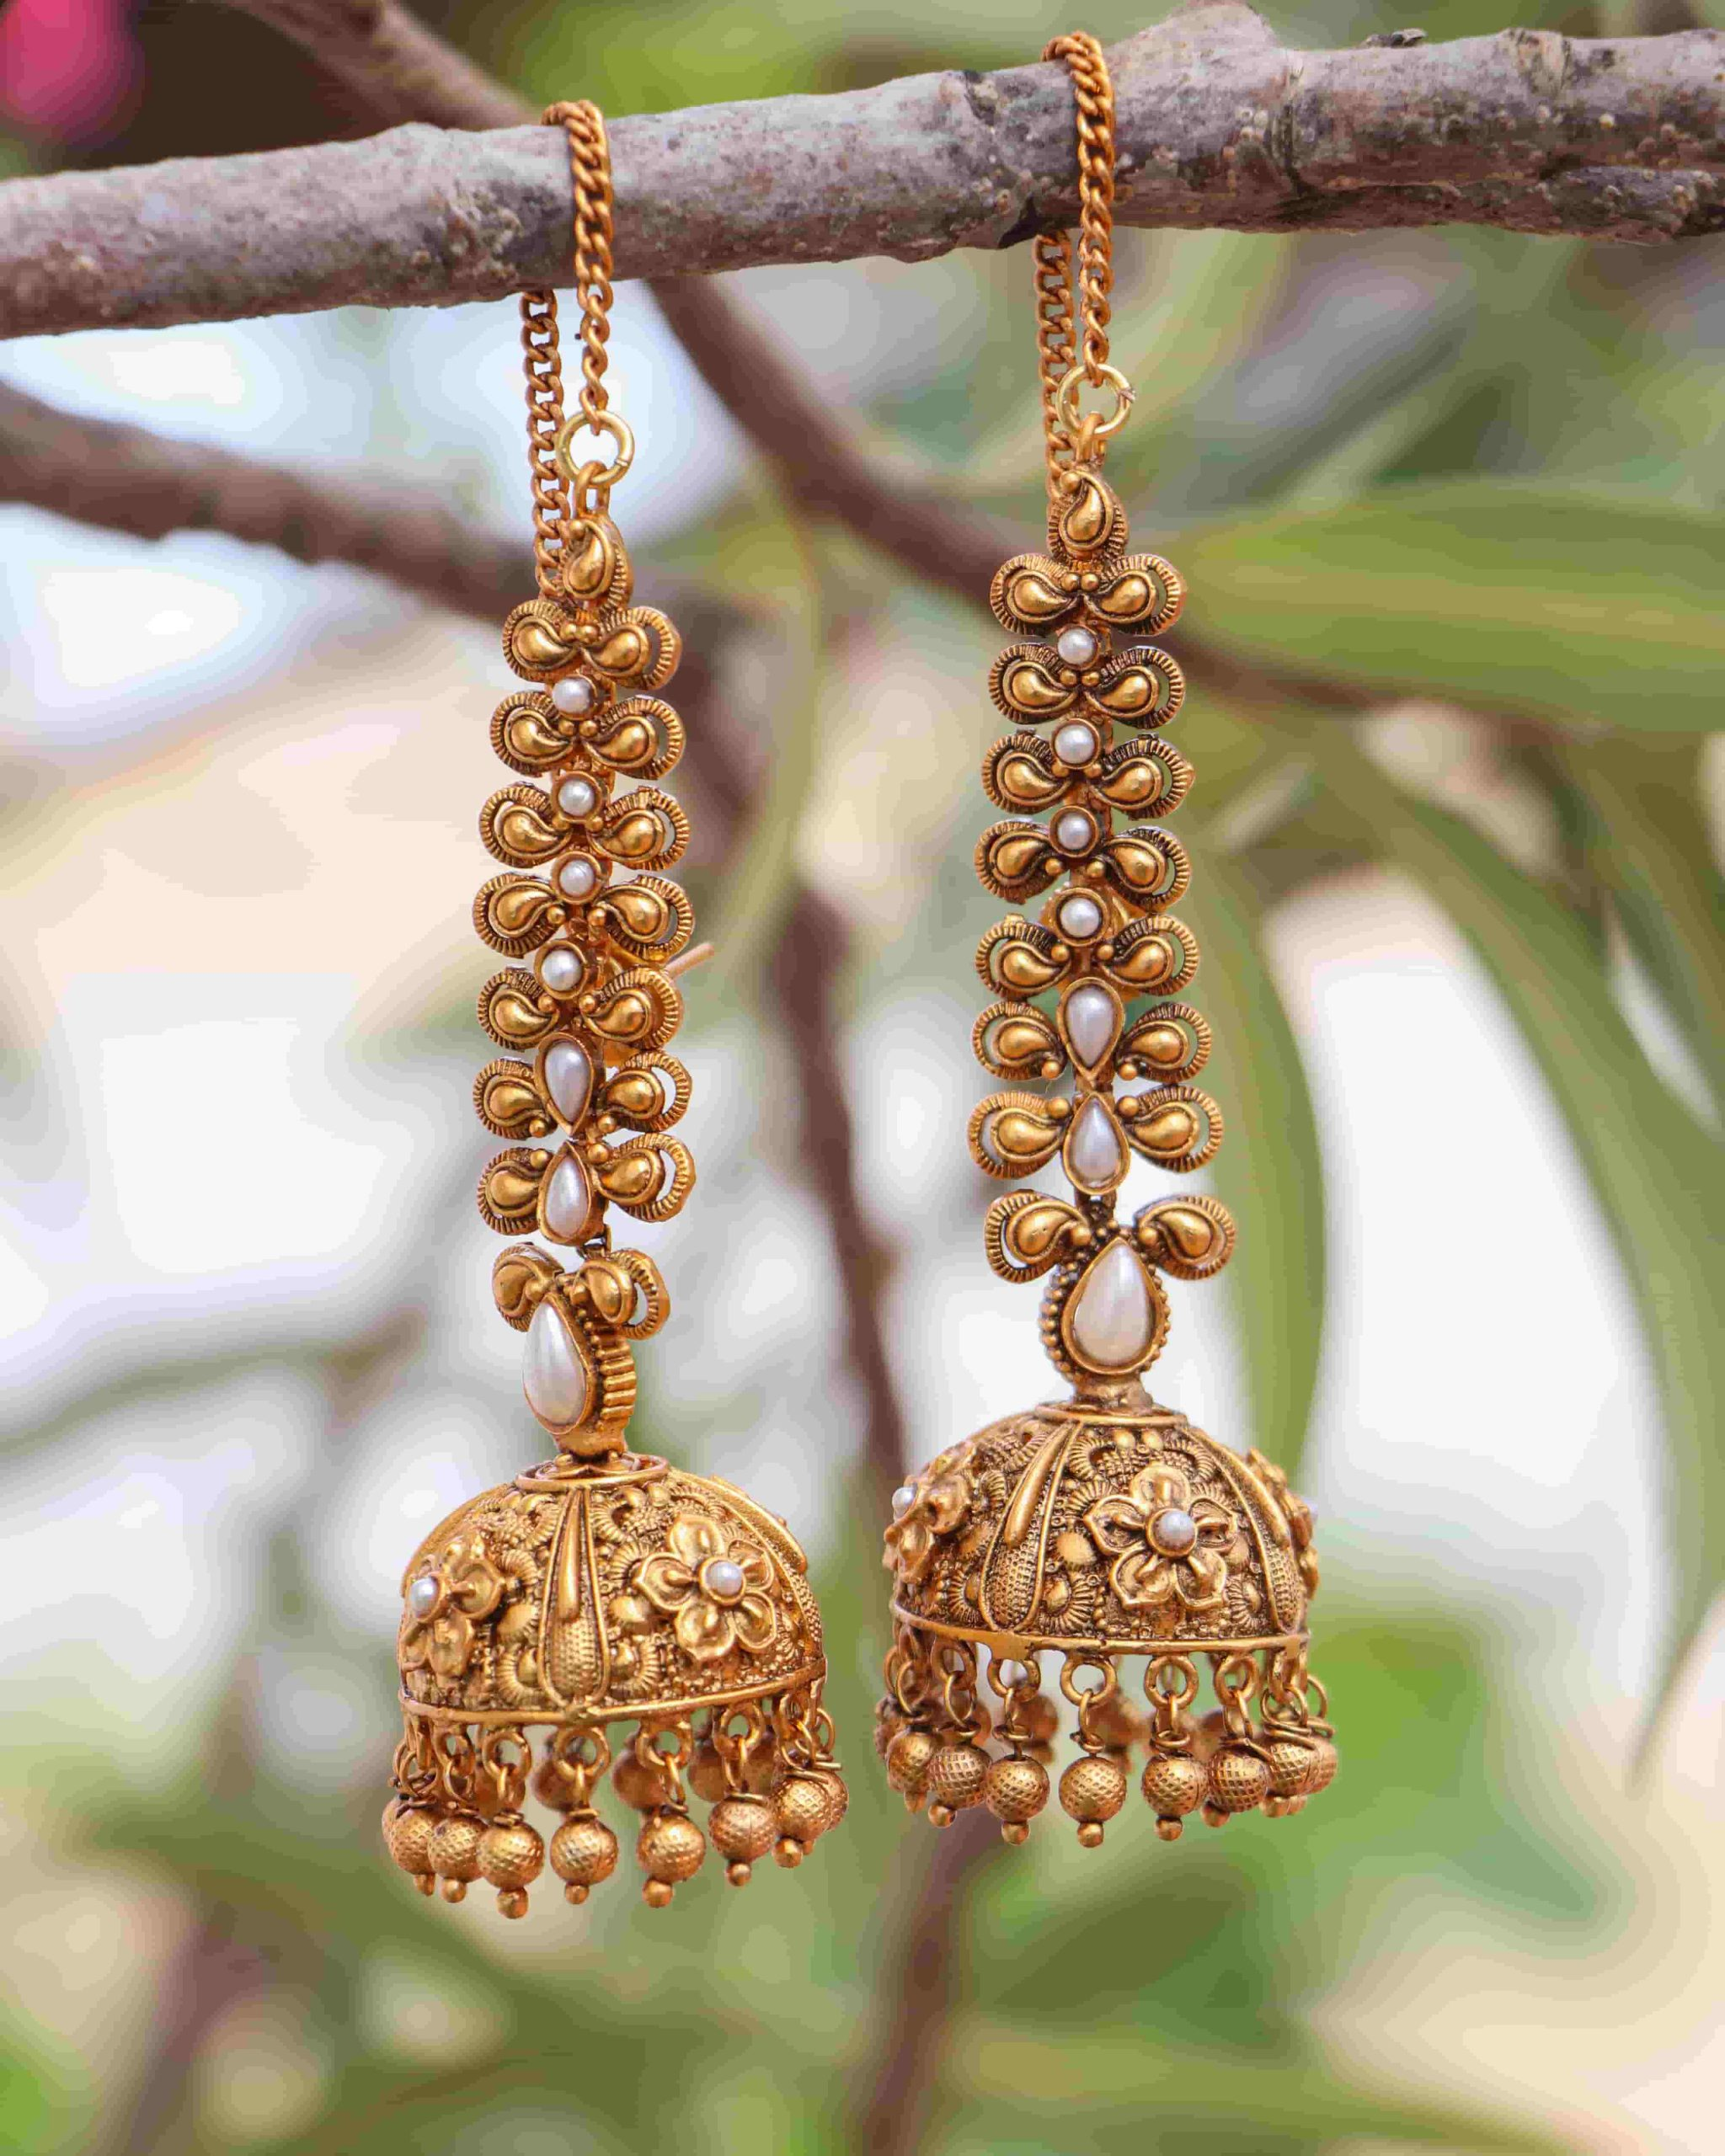 Grand-Bridal-Jhumkas-with-Ear-Chains-01-scaled